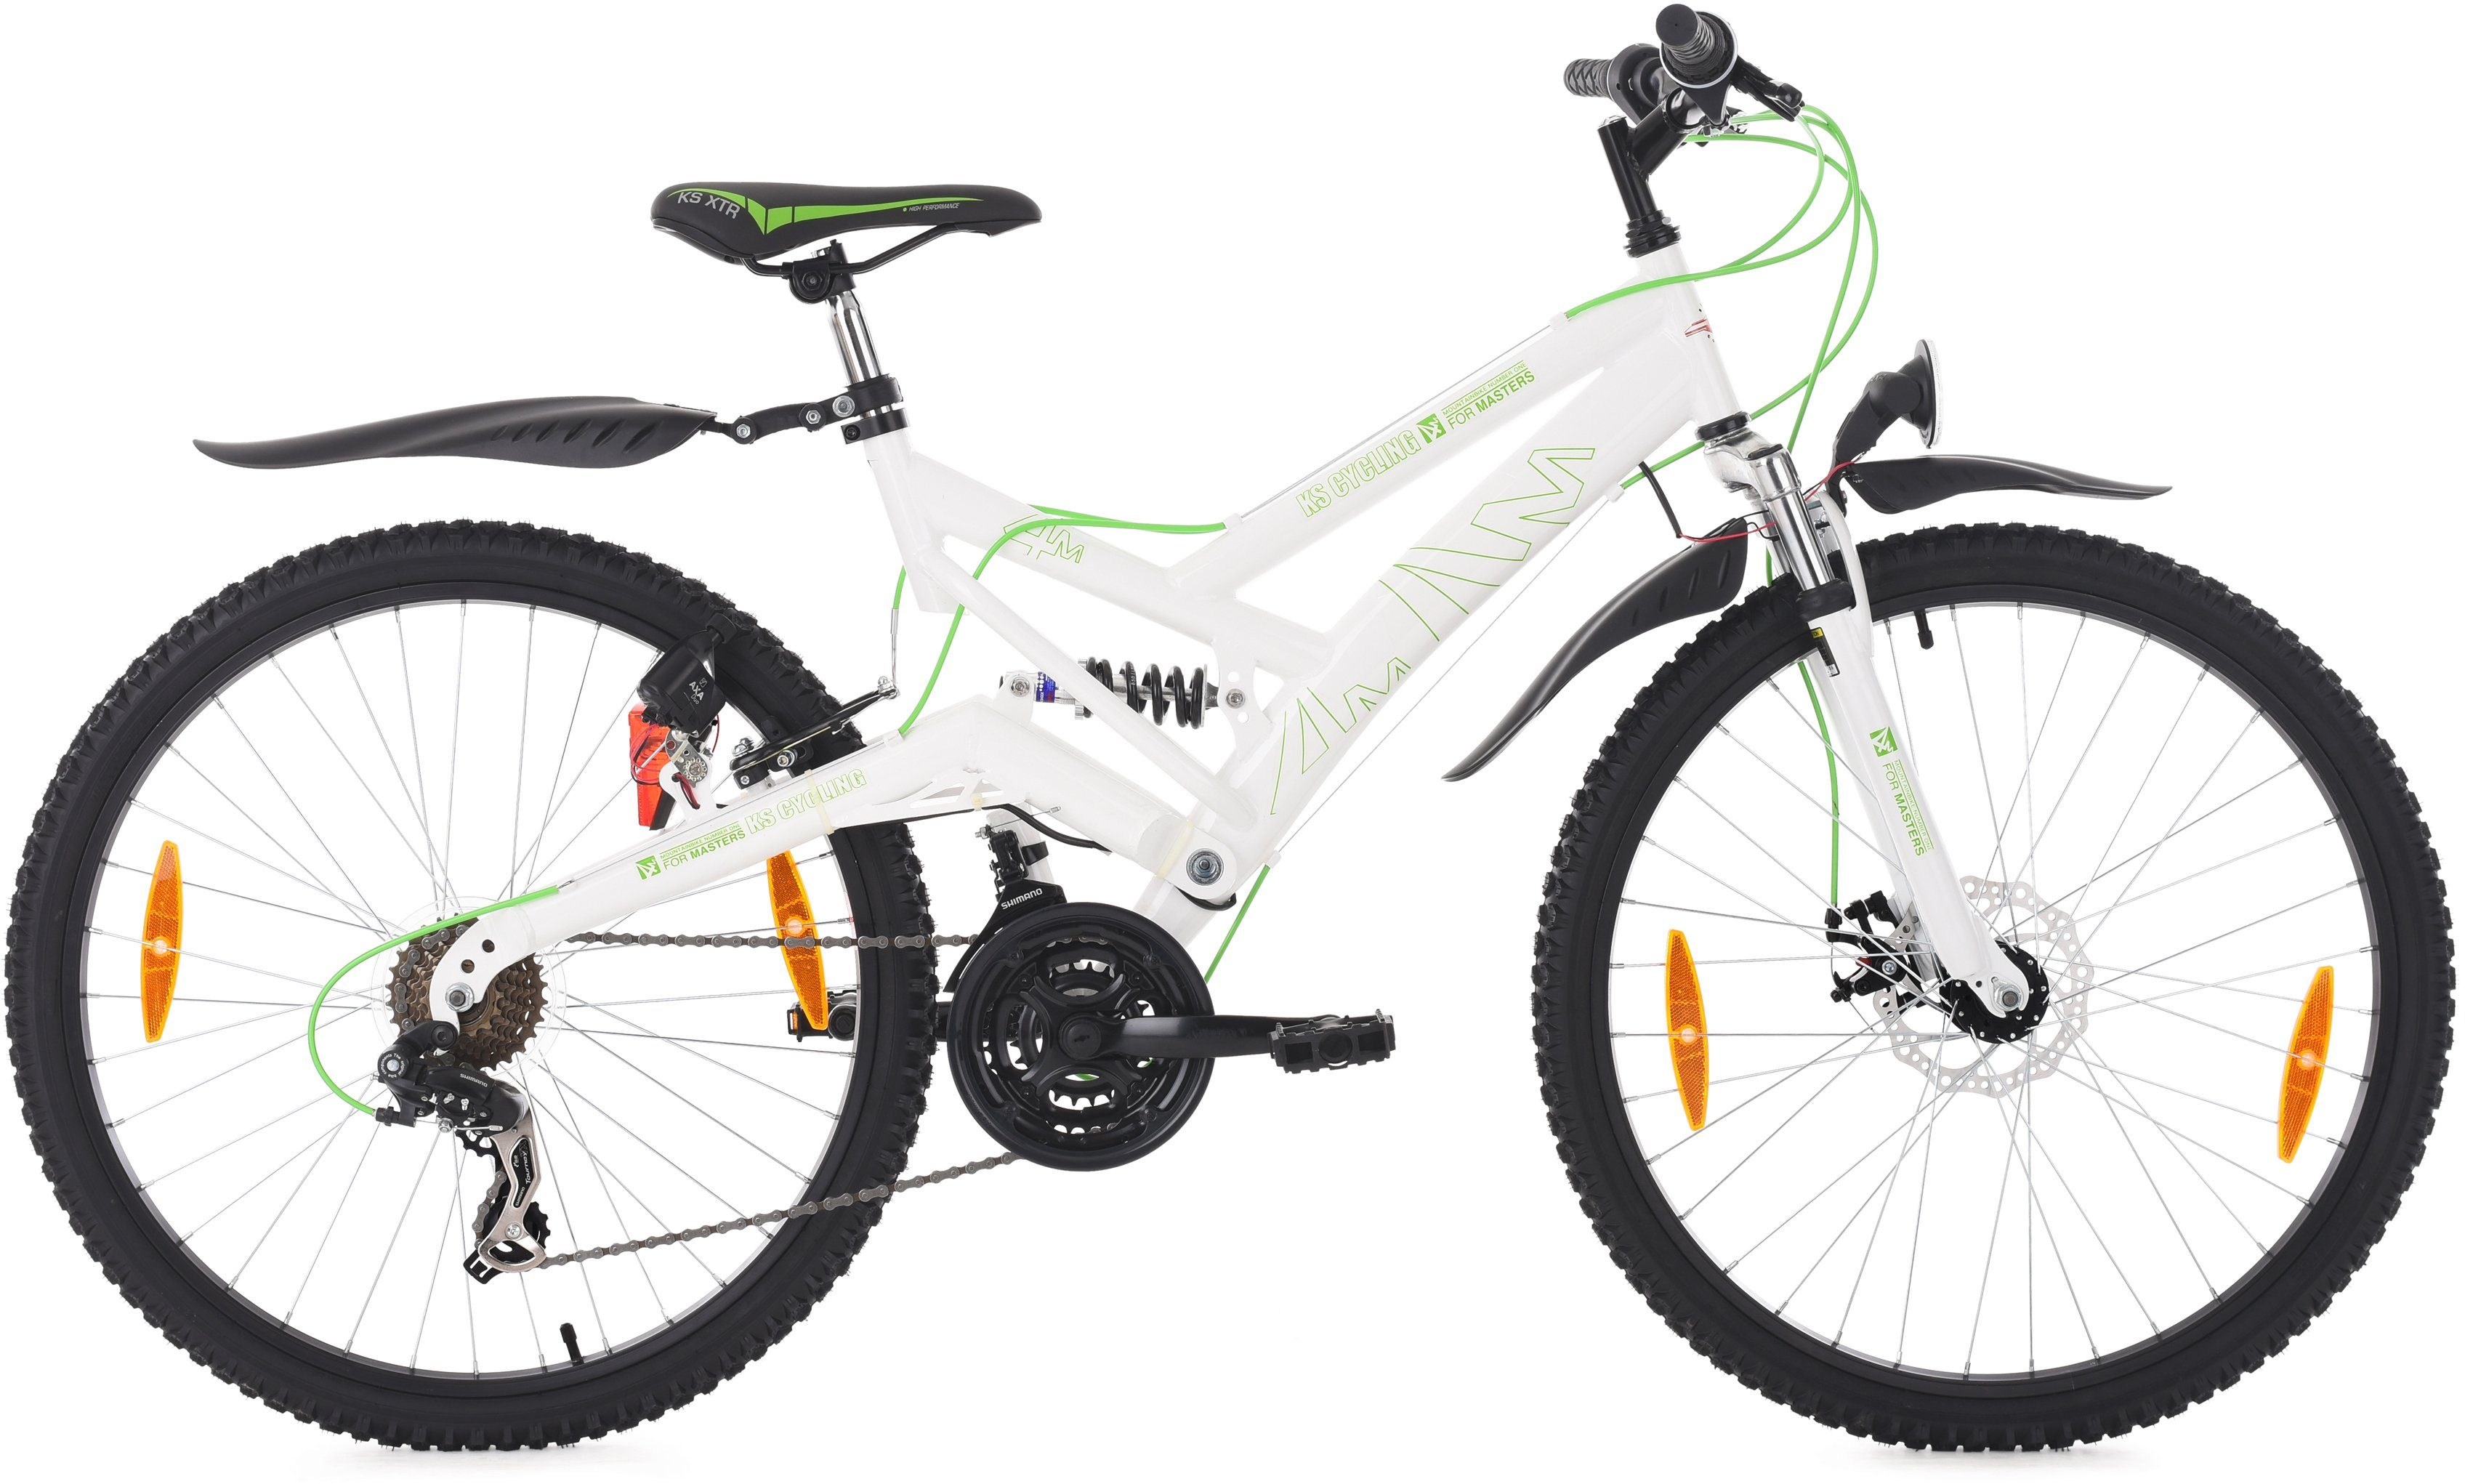 KS Cycling Fully-Mountainbike, 26 Zoll, 21 Gang Shimano Tourney Kettenschaltung, »For Masters«